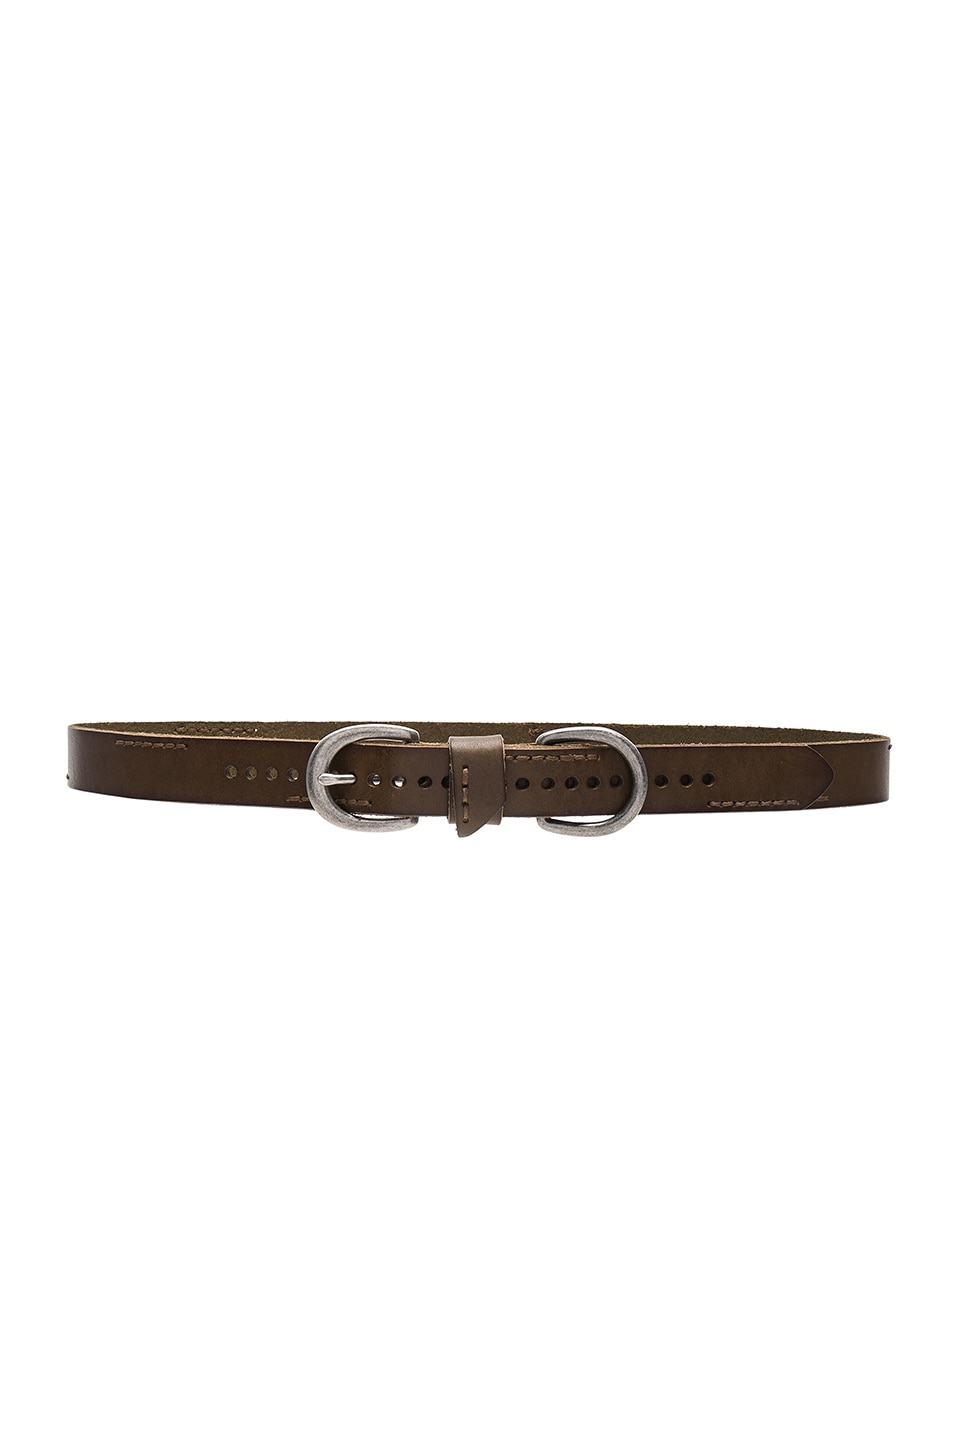 Skinny Stitch Belt by Linea Pelle